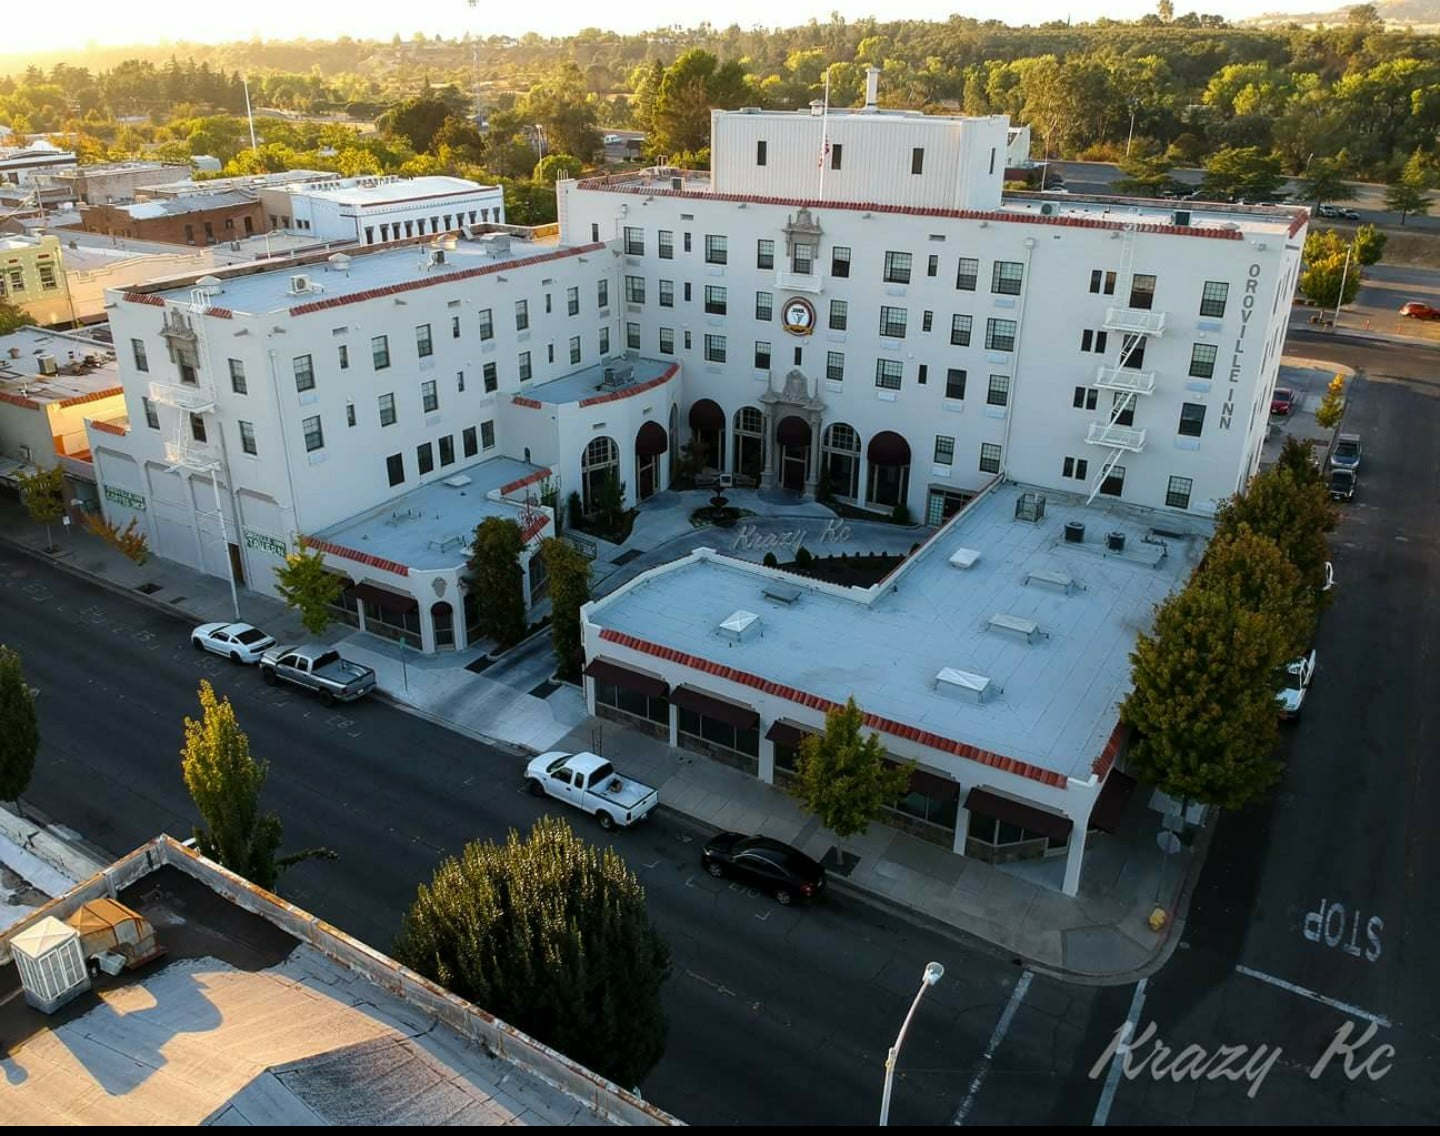 Historic Oroville Inn - We're so excited to see the Oroville Inn brought back up to it's former glory, and look forward to seeing many beautiful weddings and events held here. For more information visit their Facebook page!